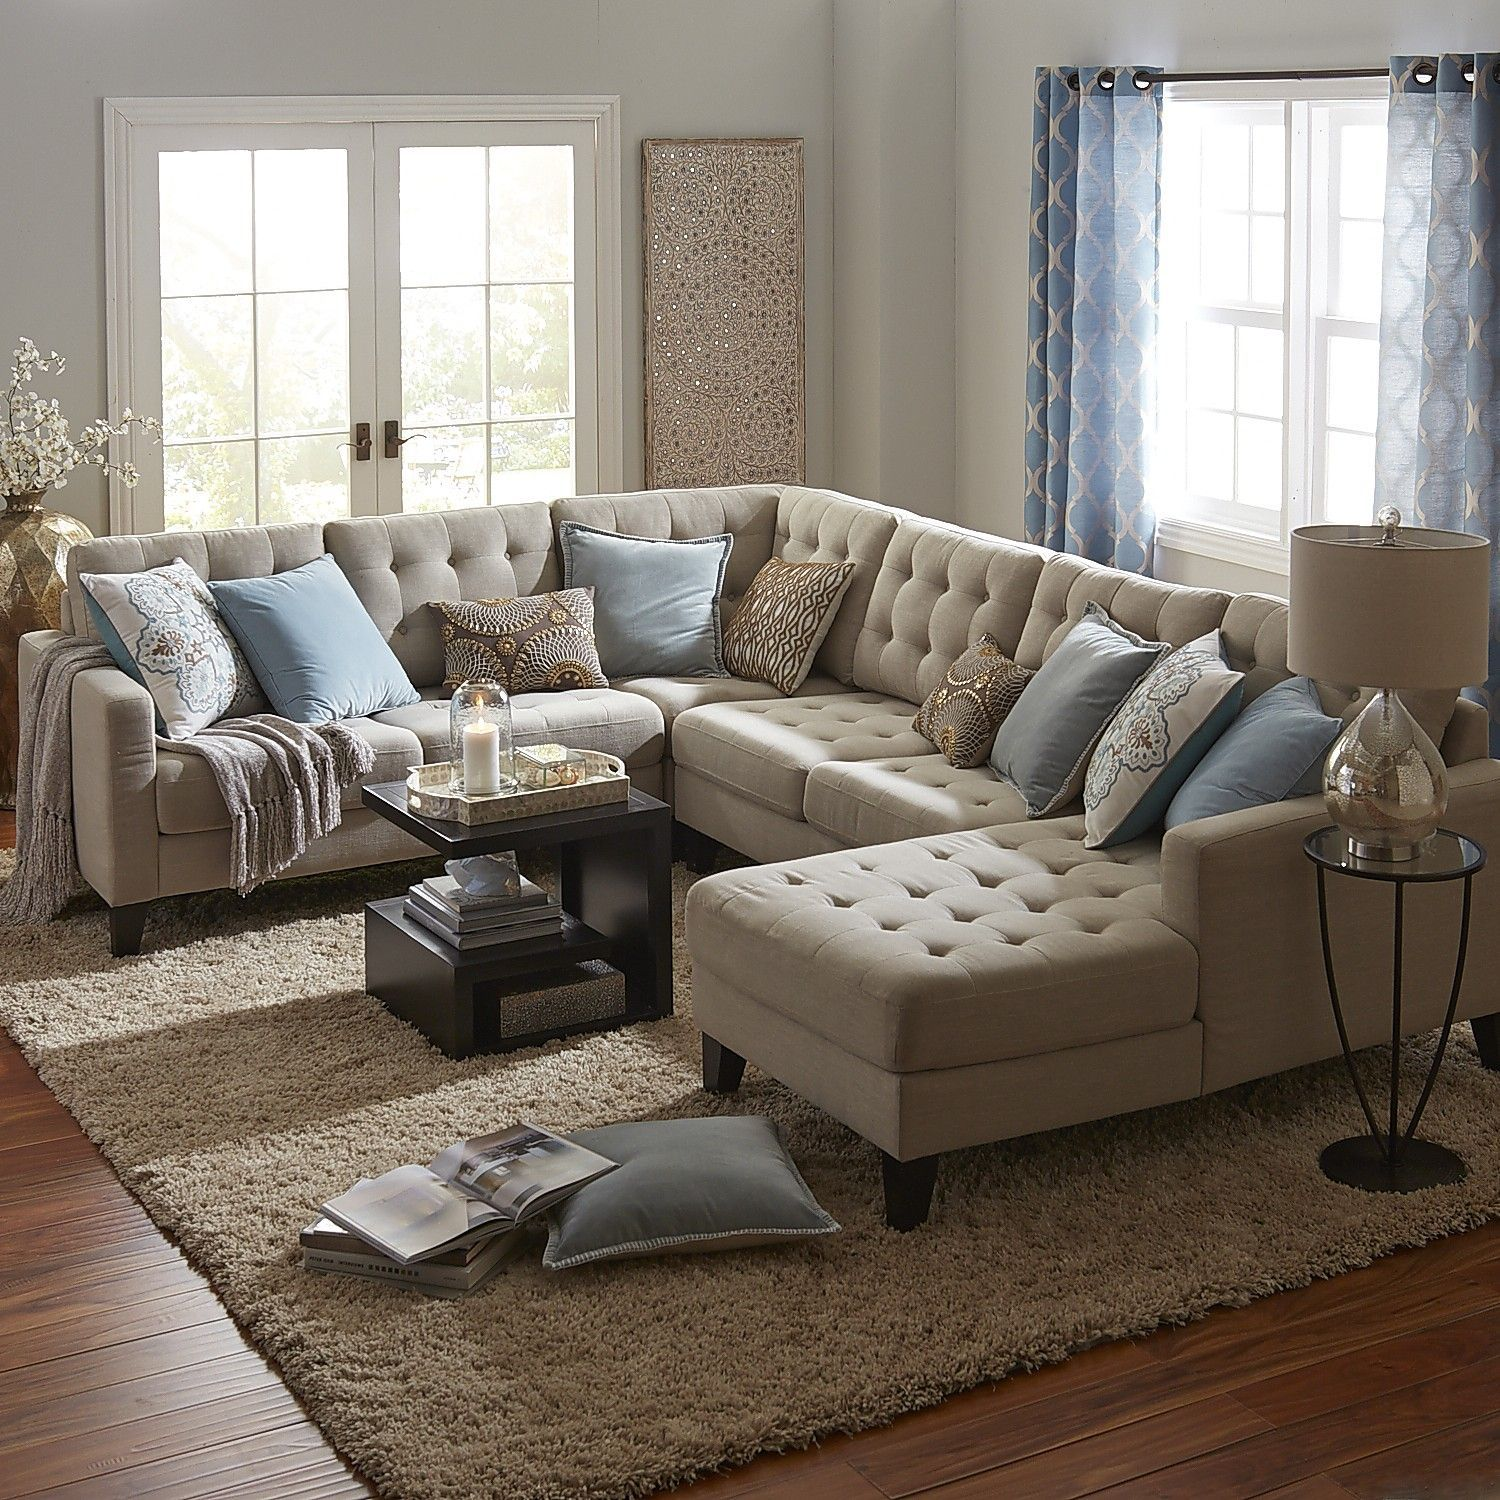 Your Furniture: Build Your Own Nyle Stone Gray Sectional Collection In